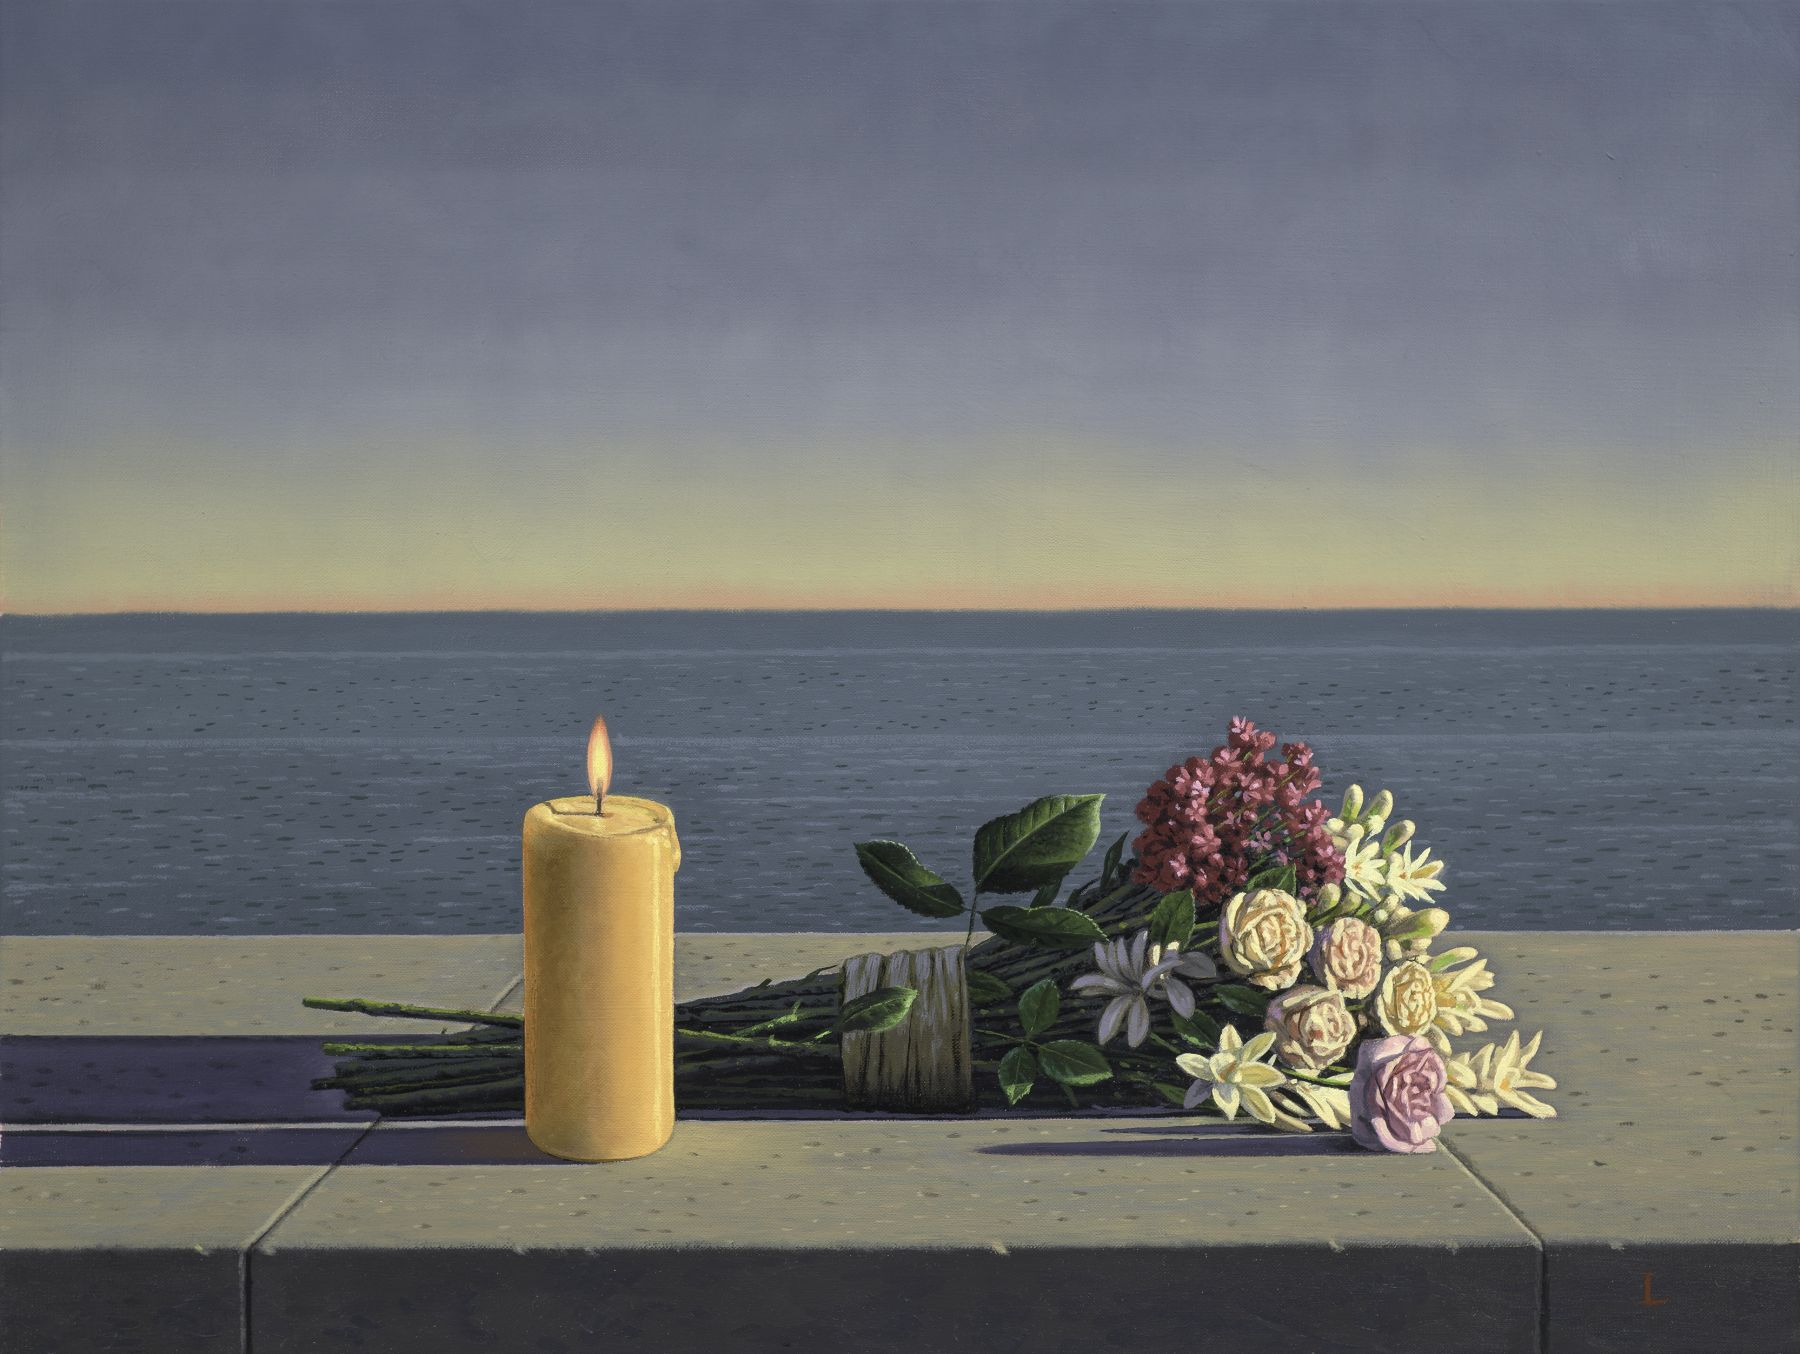 David Ligare (b. 1945), Candle and Flowers, 2018